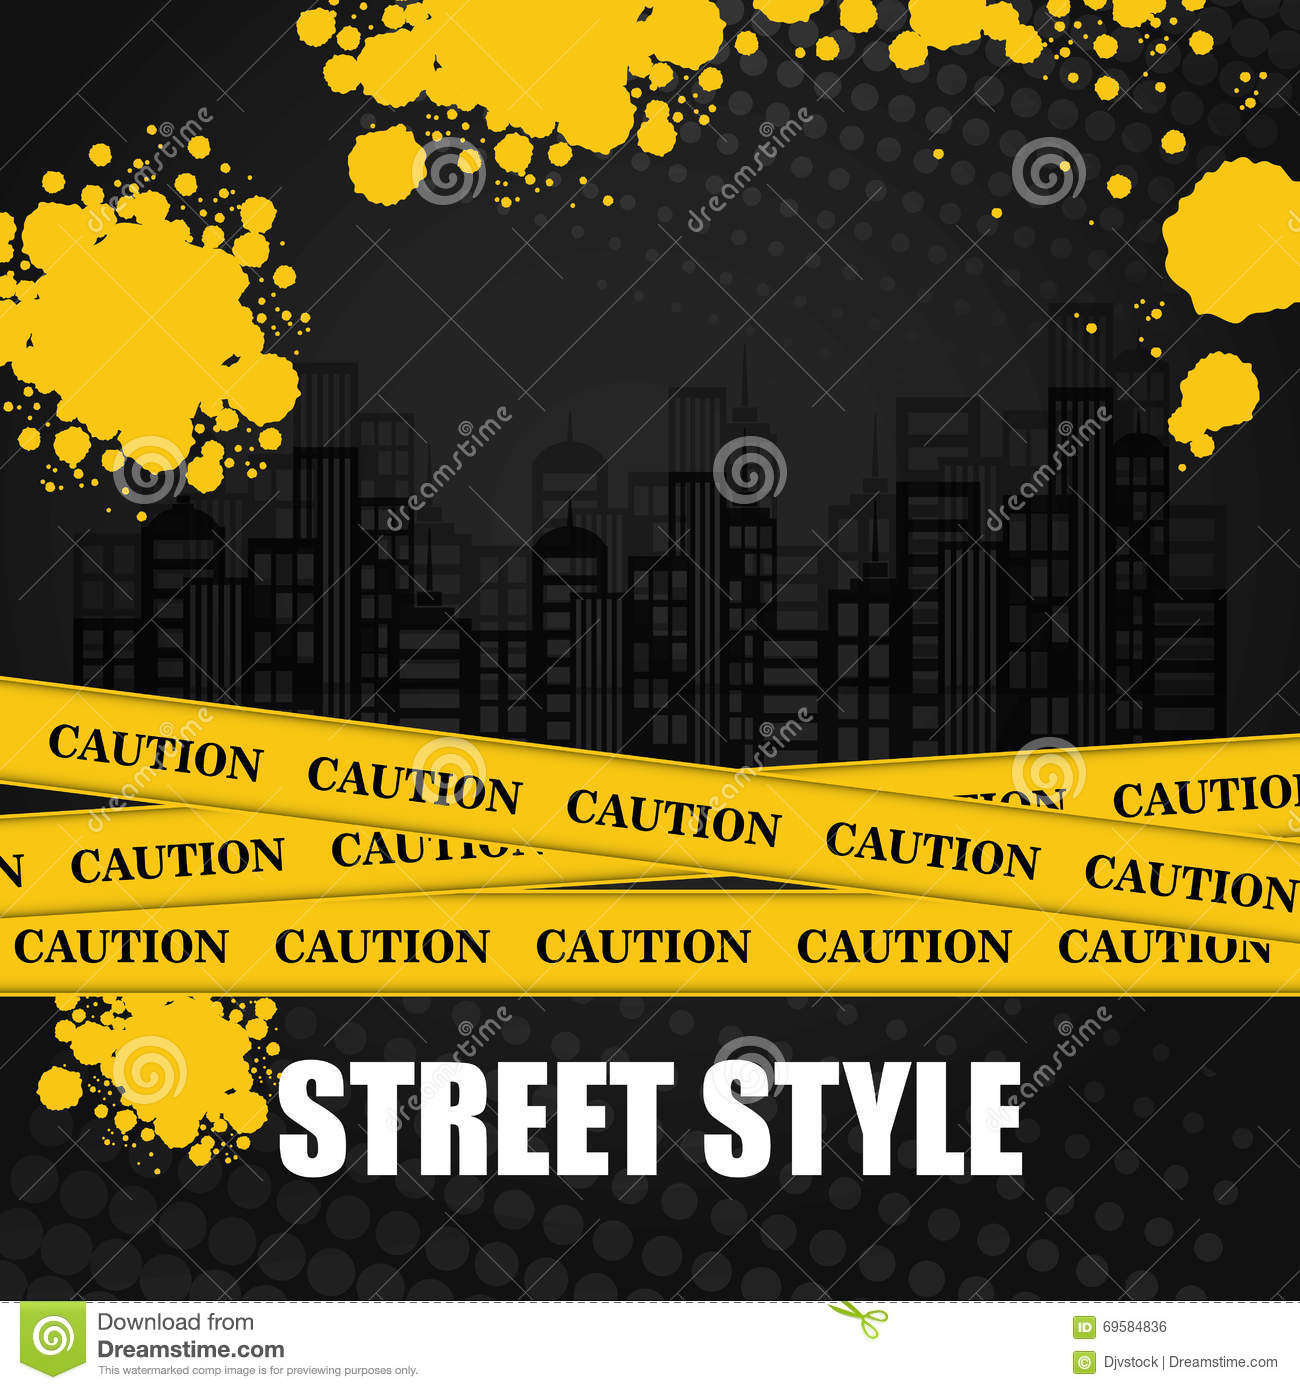 Urban Street Design Concepts